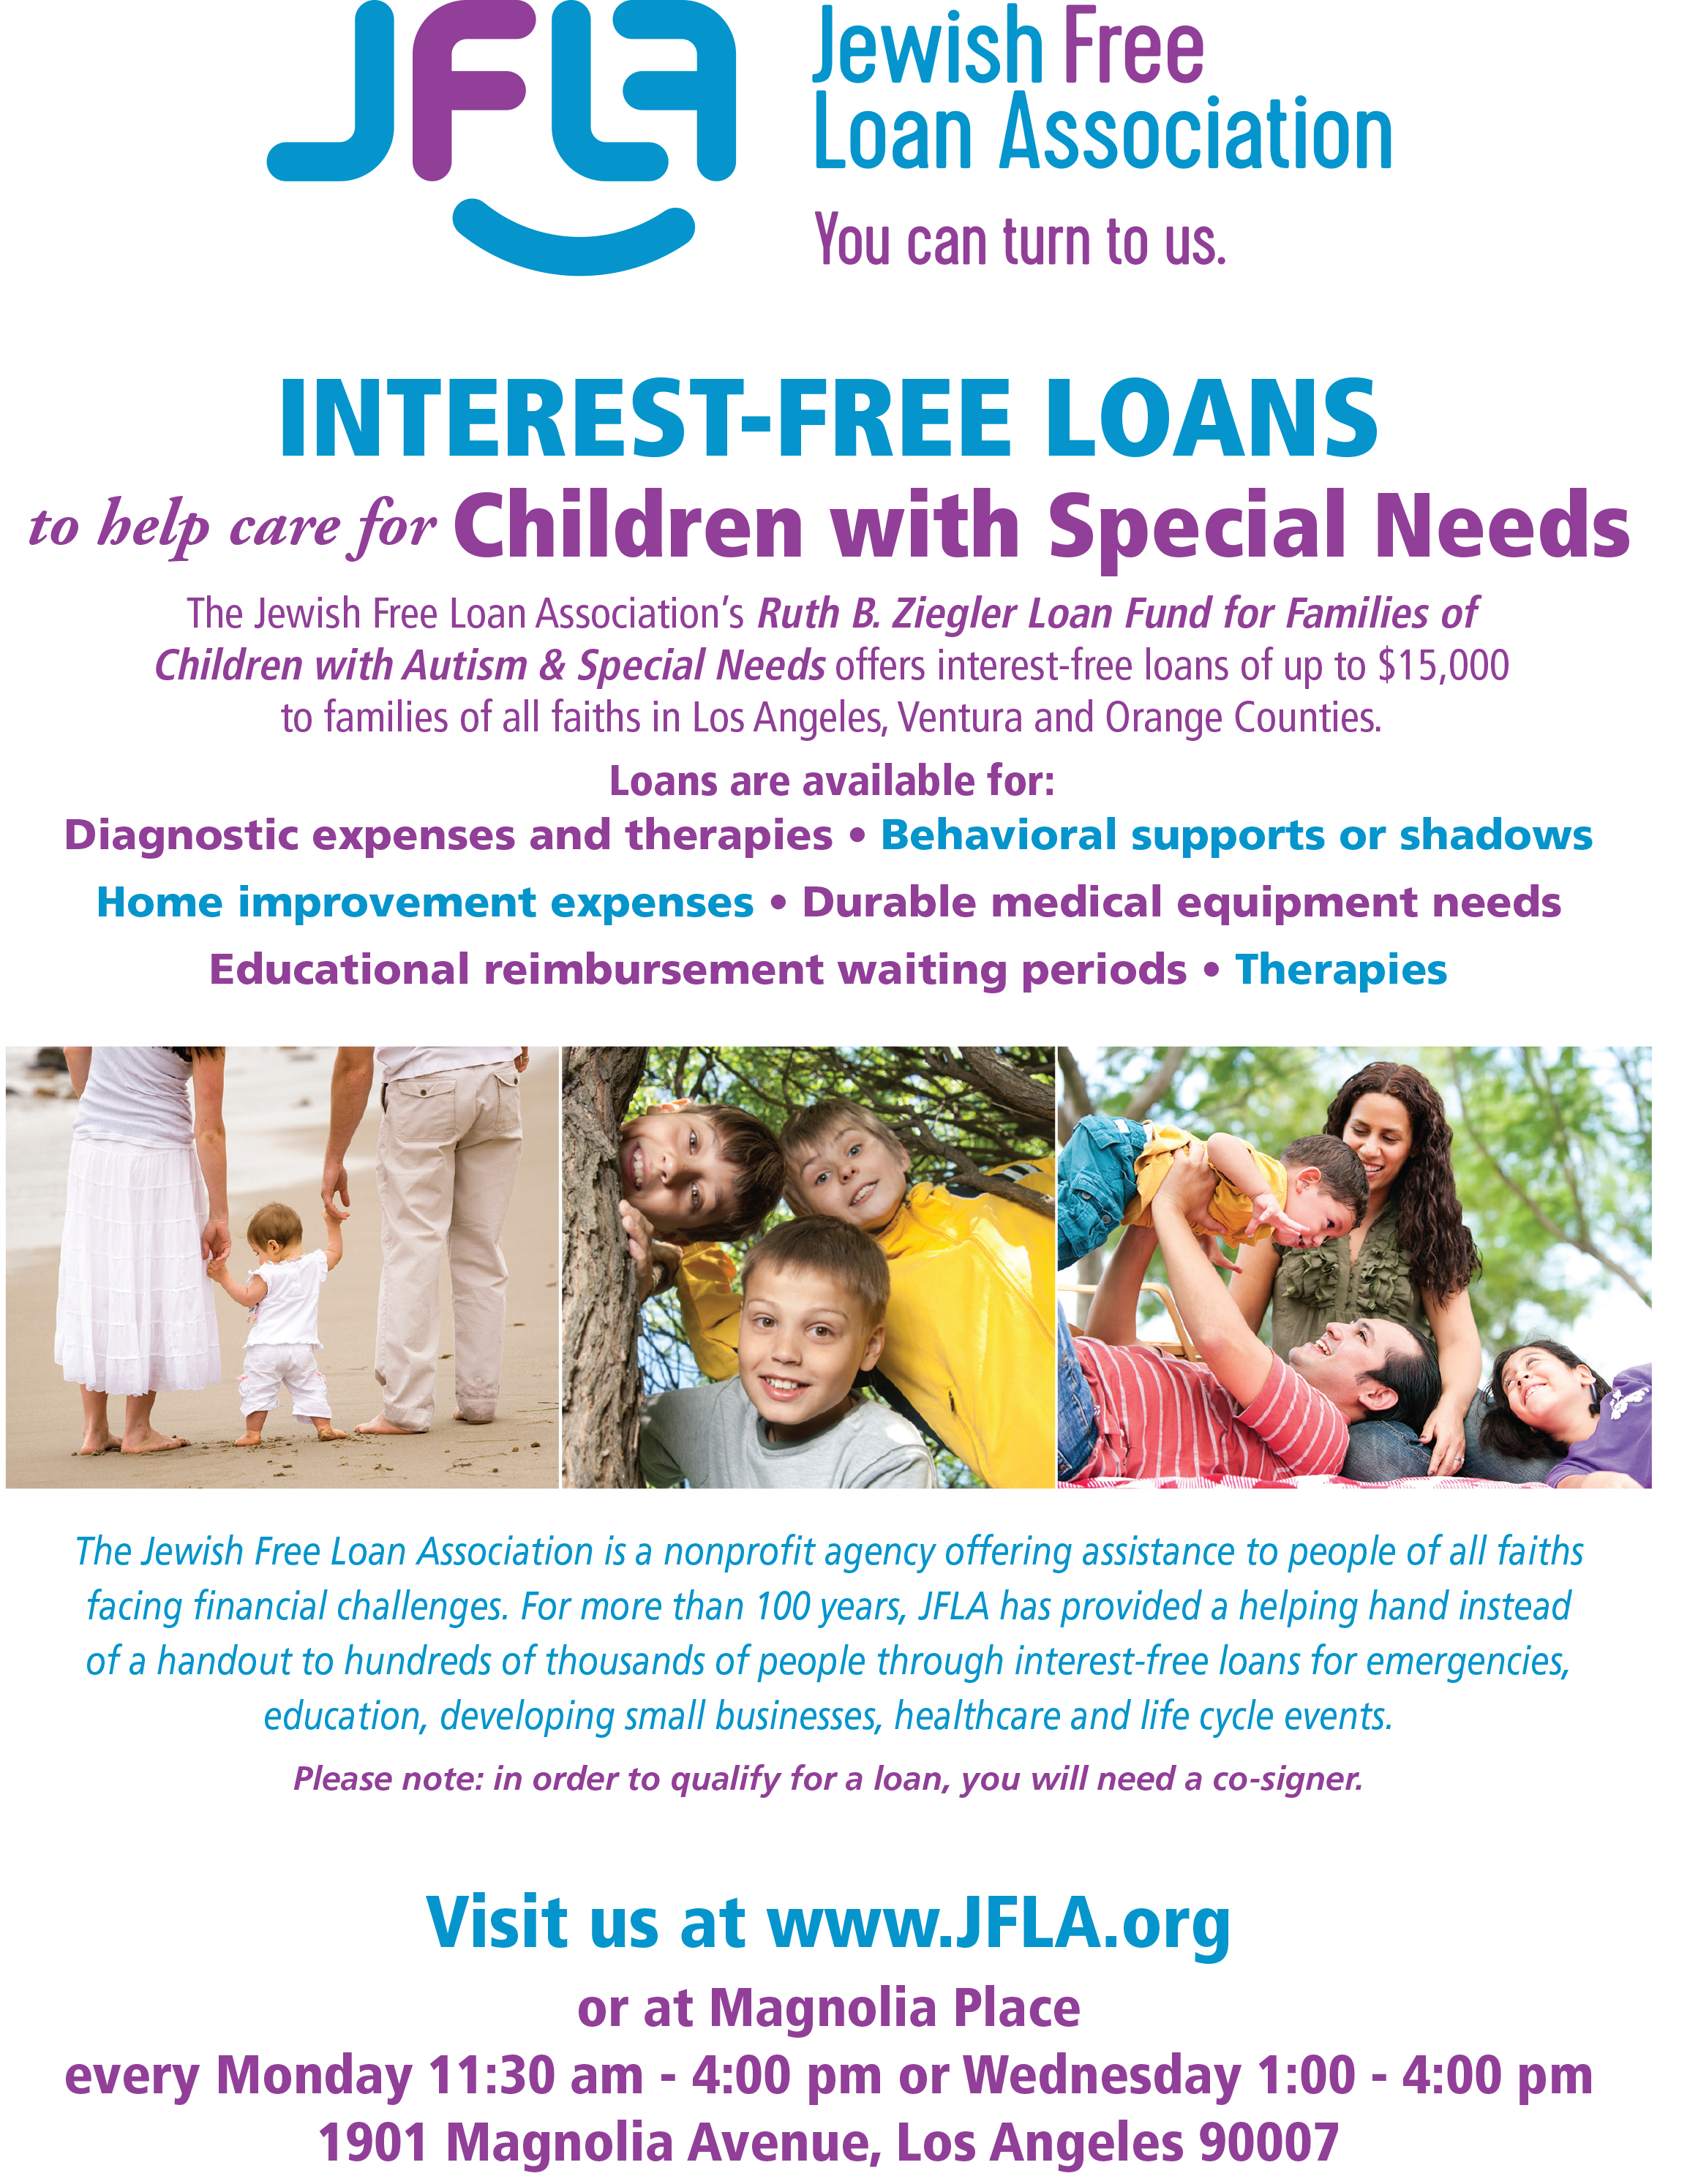 Children with Special Needs | HaMercaz | The Jewish Federation of Greater Los Angeles